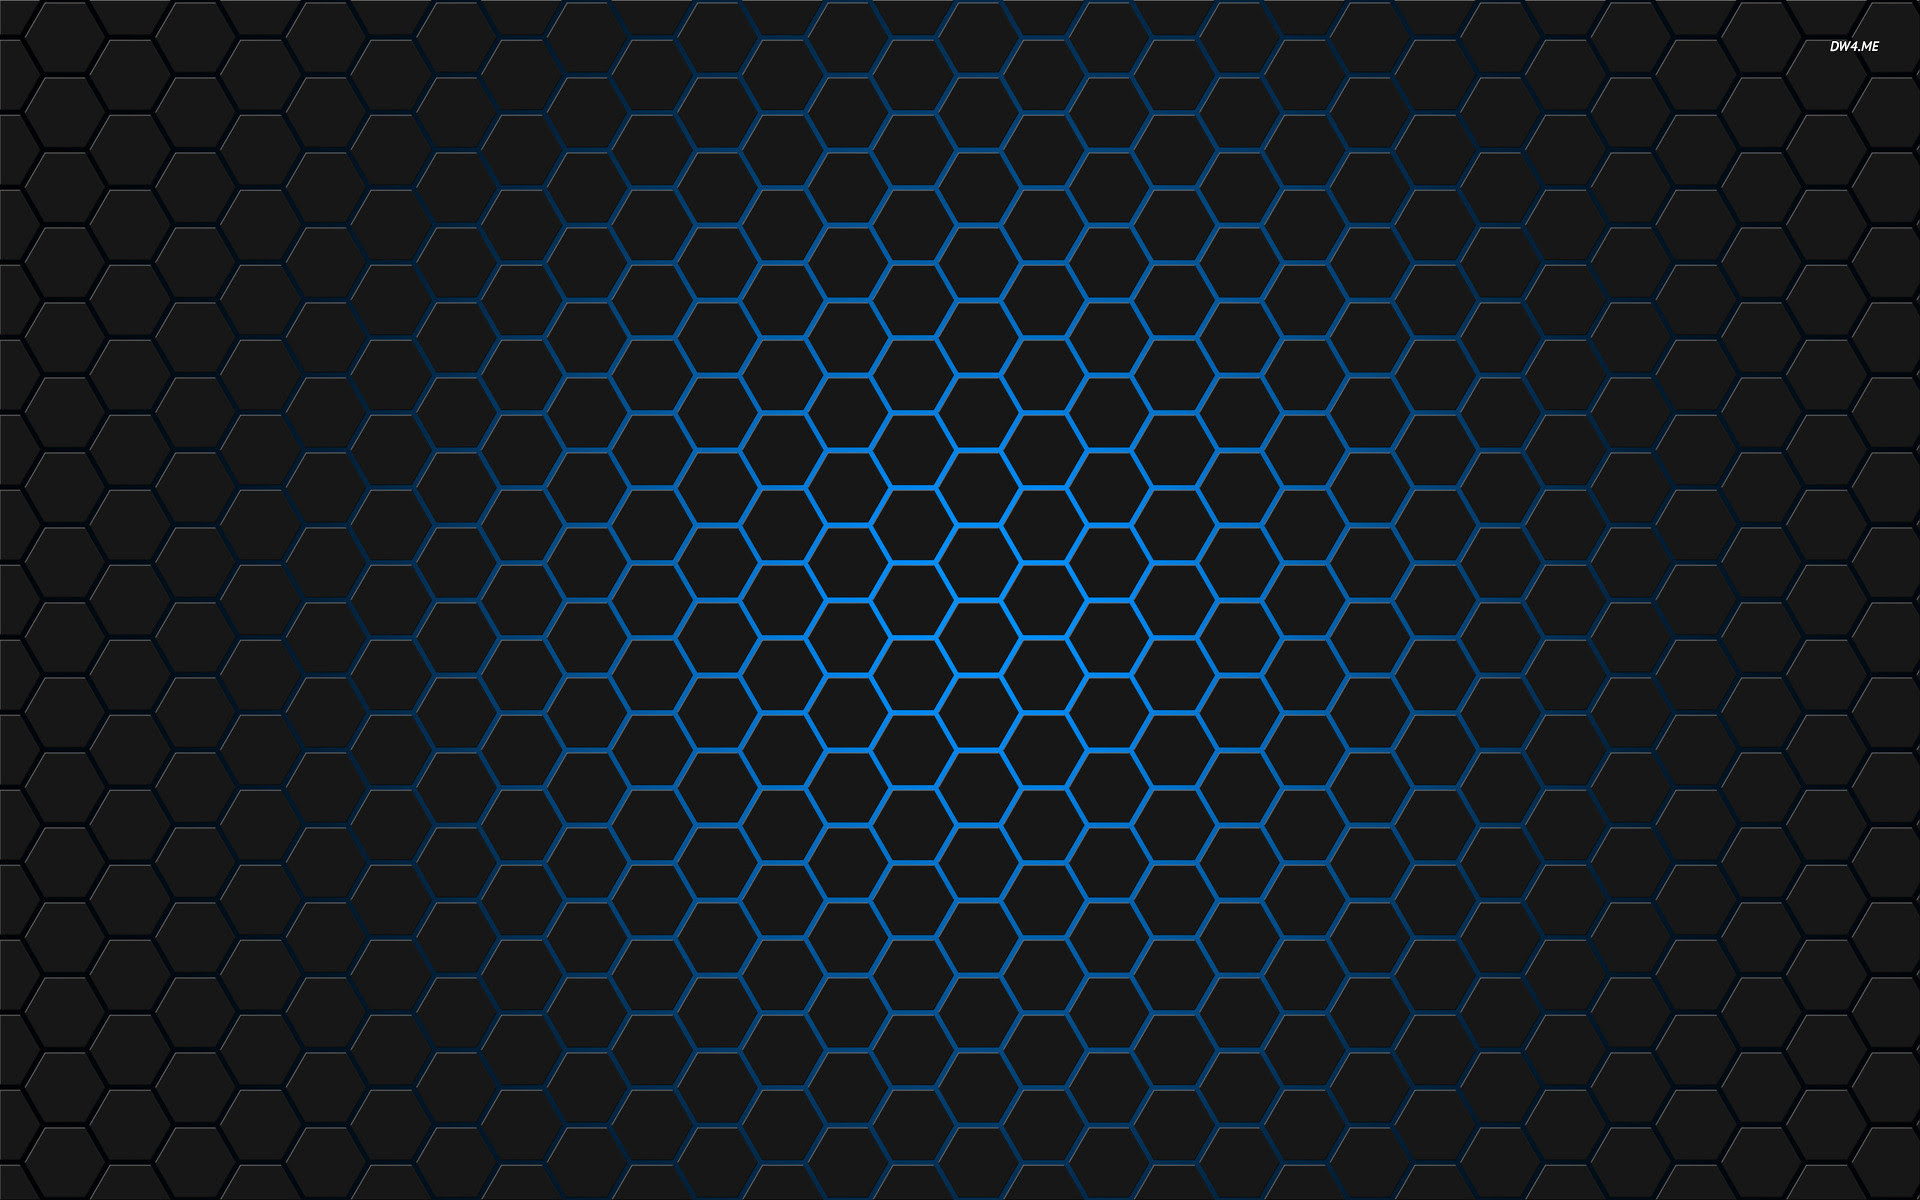 Blue Honeycomb Wallpaper 74  images